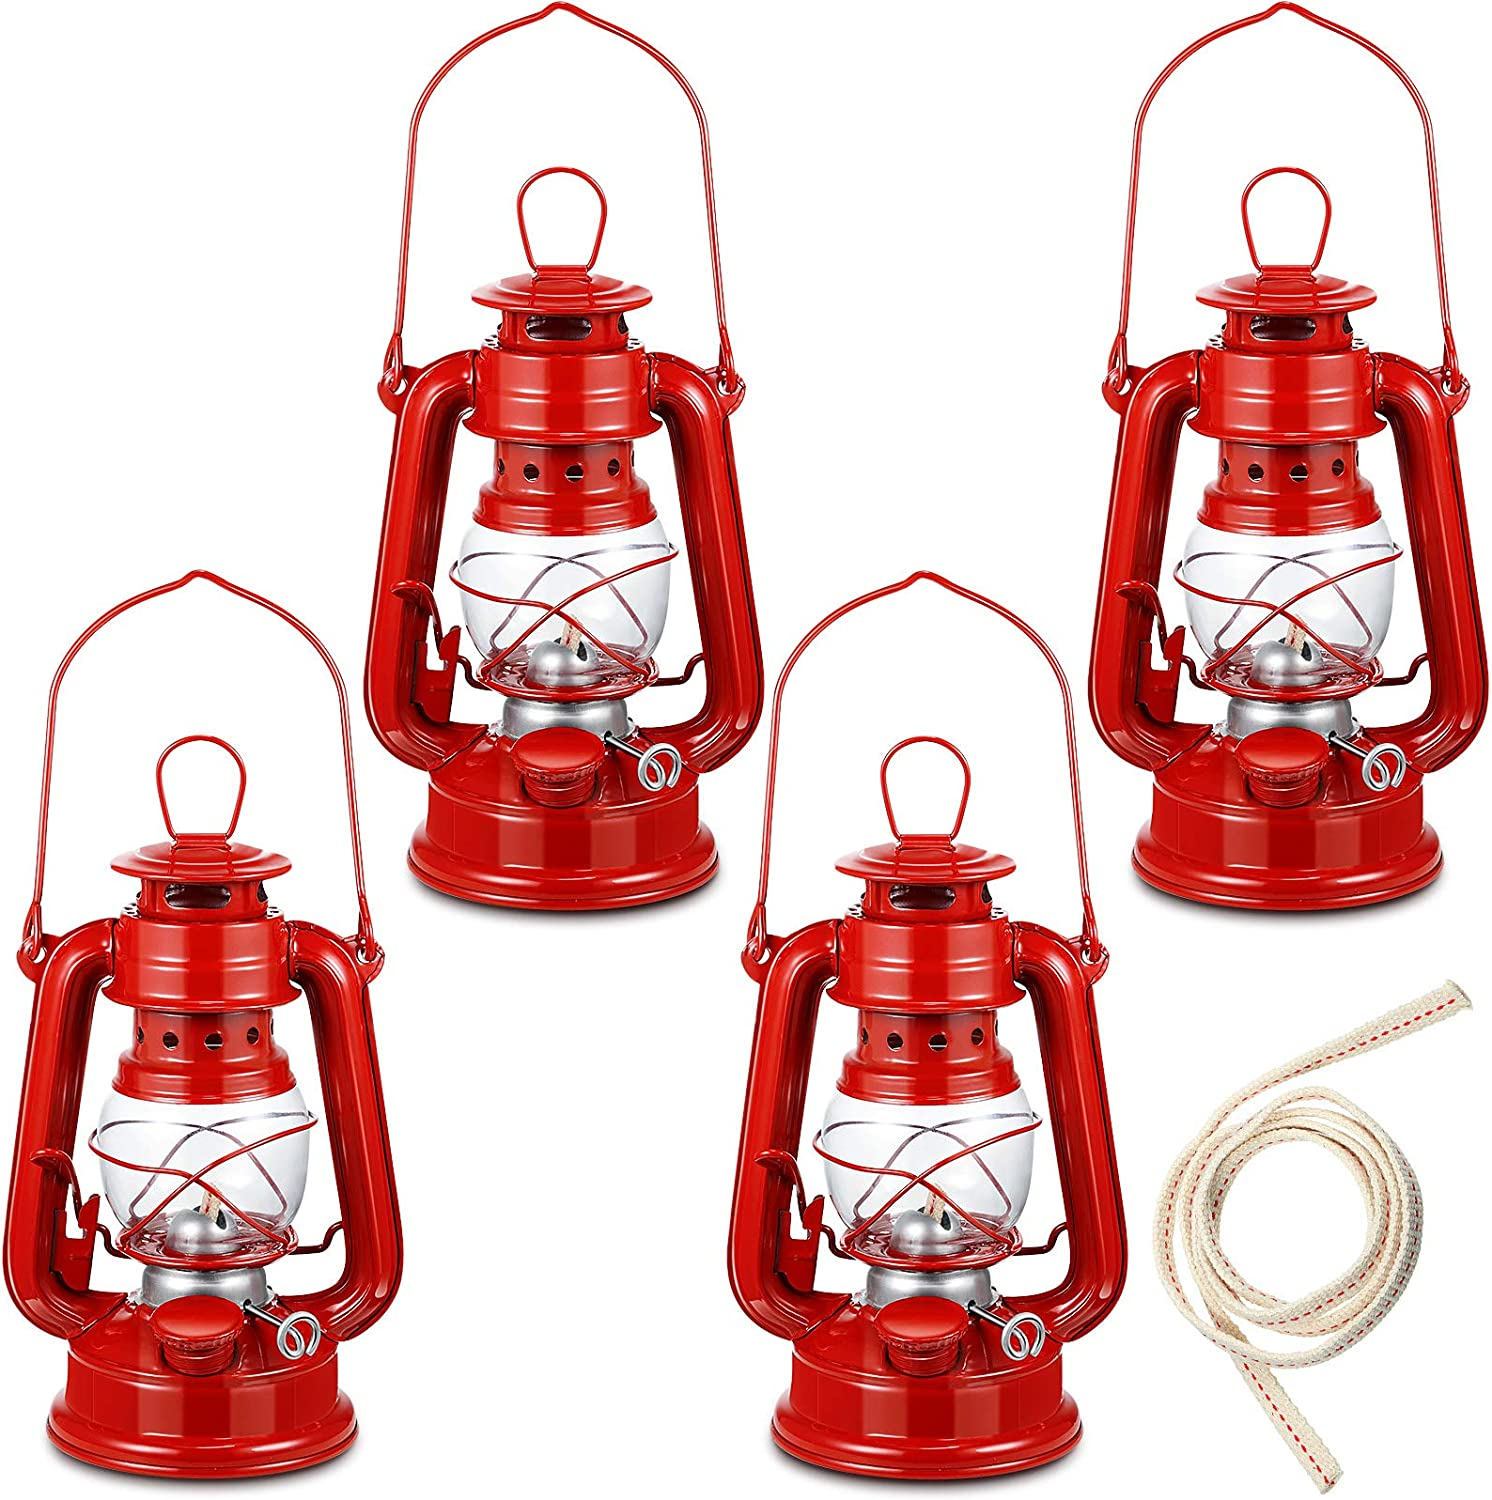 4 Pieces Small Hurricane Lantern Oil Max 54% OFF Lamp Inch Selling and selling 8 Hanging Kerosen